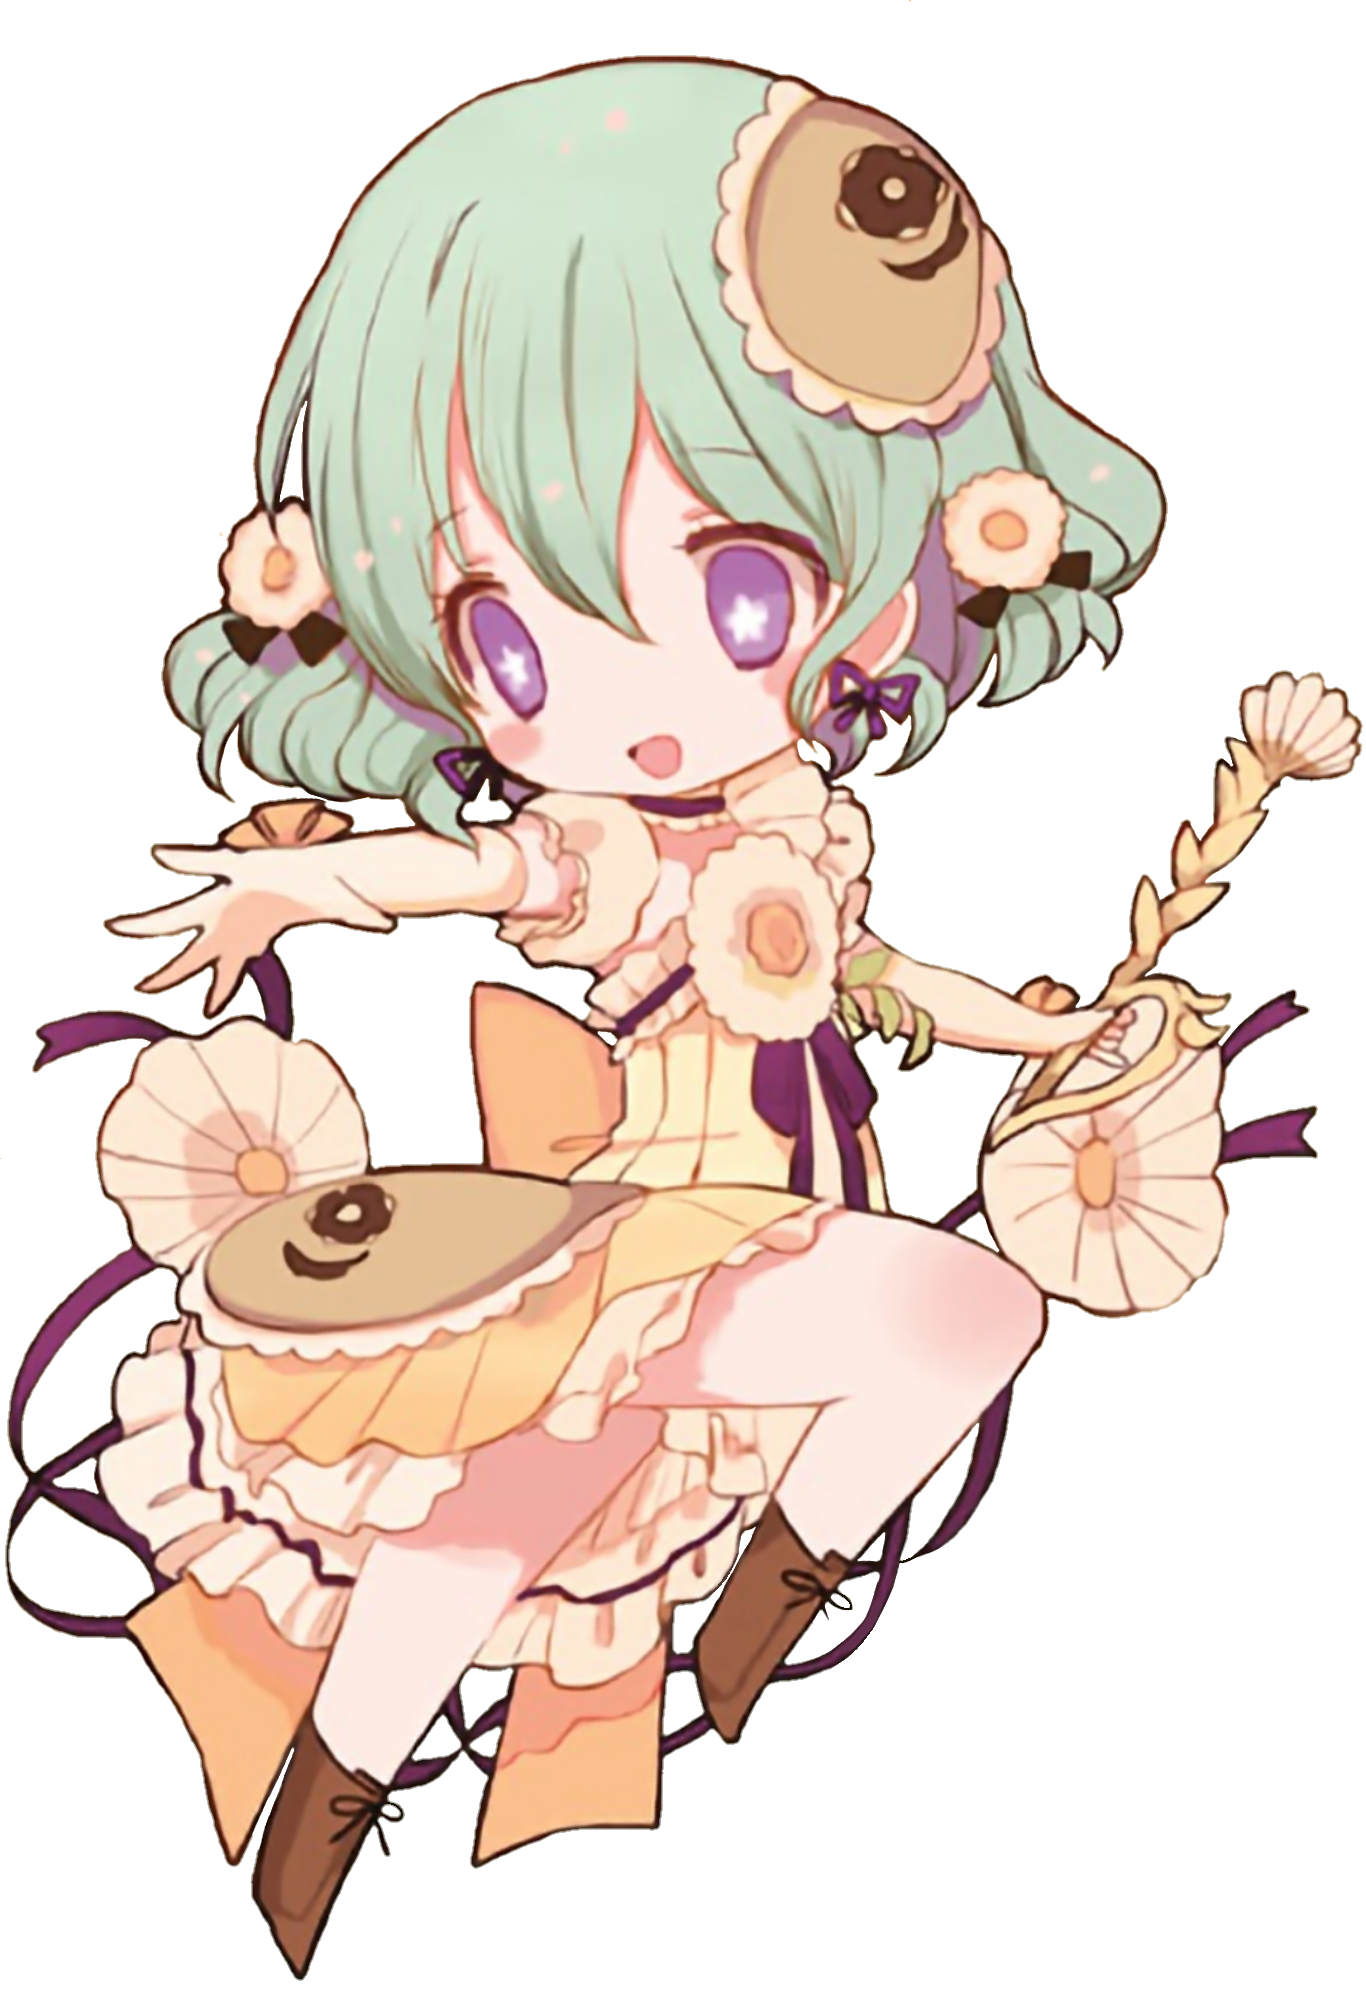 Magical Daisy/Image Gallery